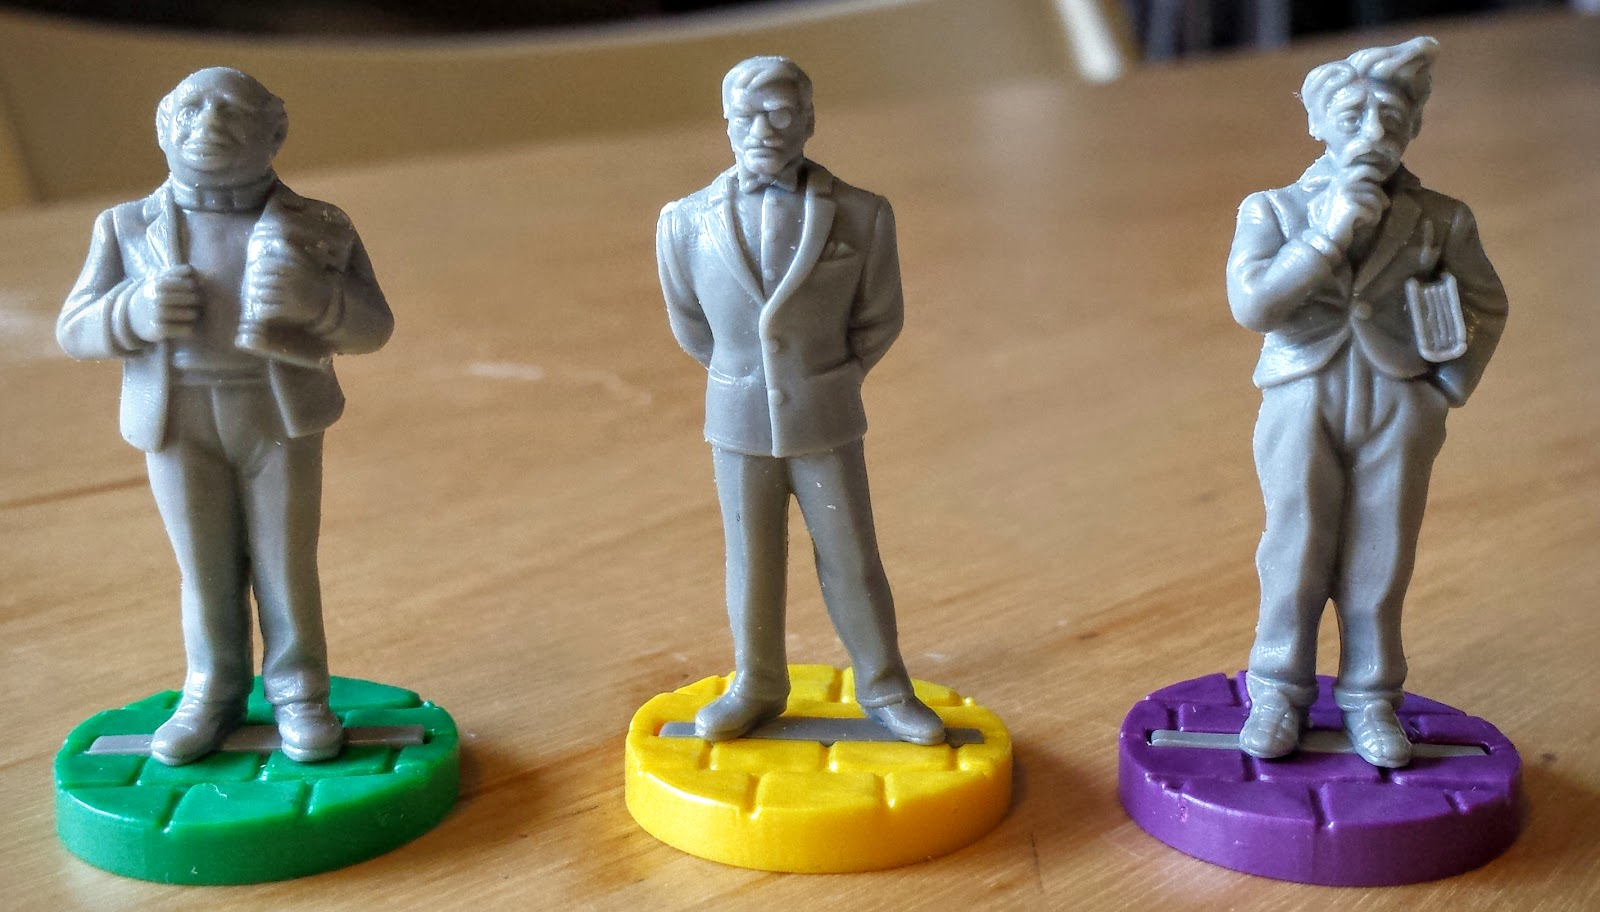 Cheap investigator figures from Cluedo